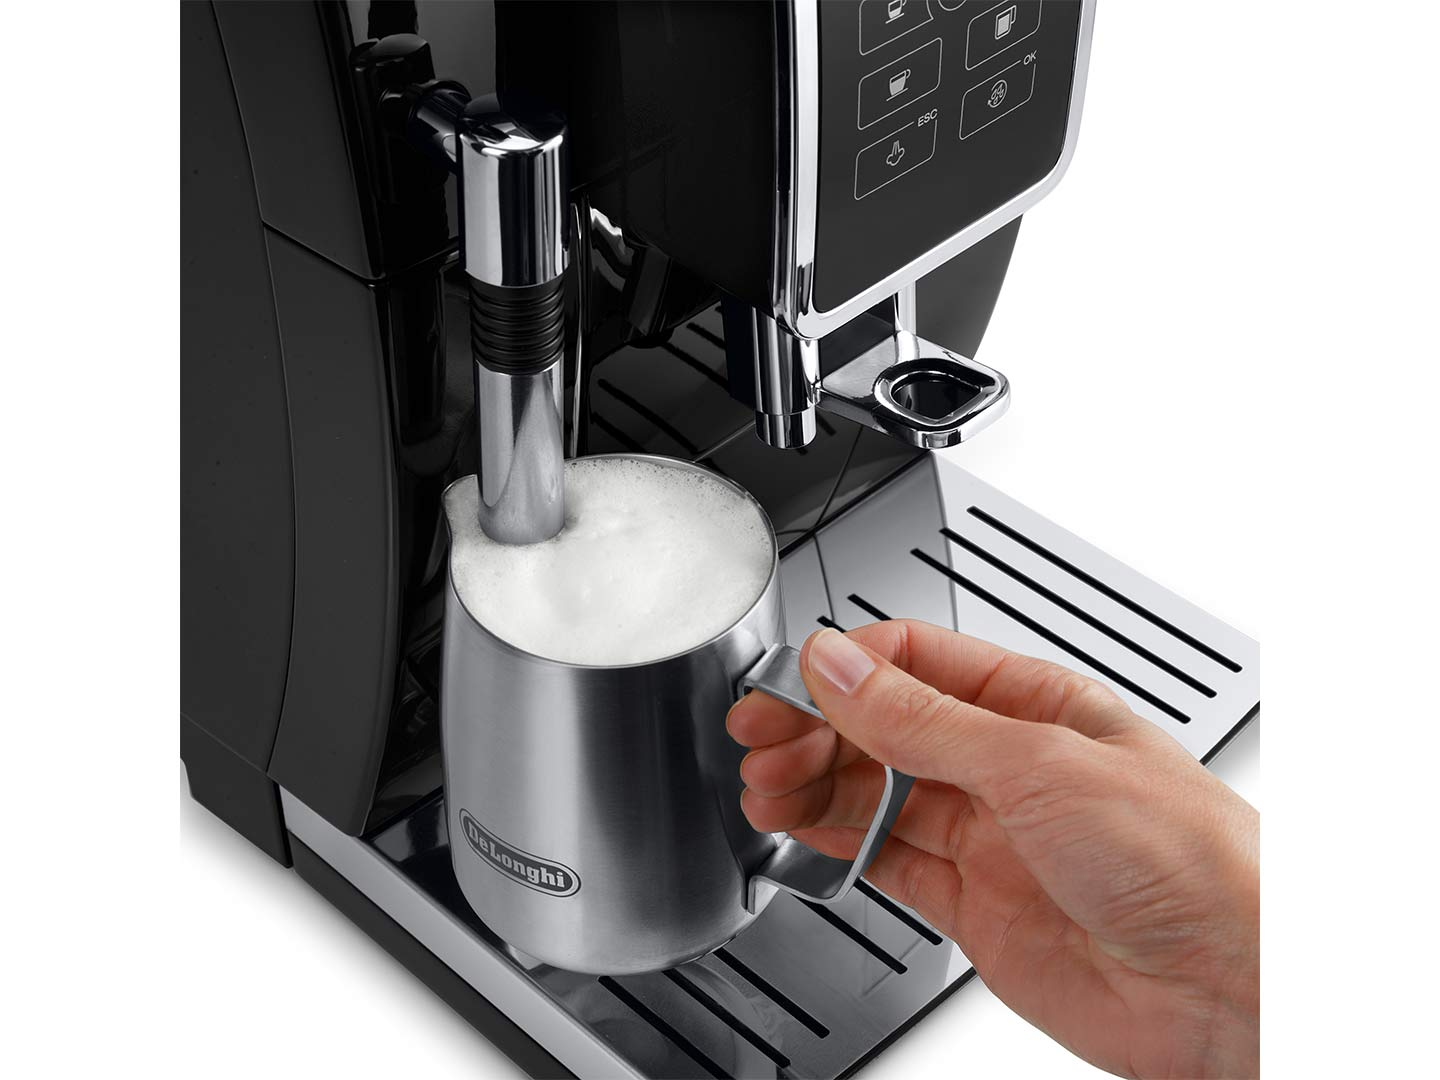 DeLonghi Dinamica ECAM 350.15.B Fully Automatic Coffee Machine